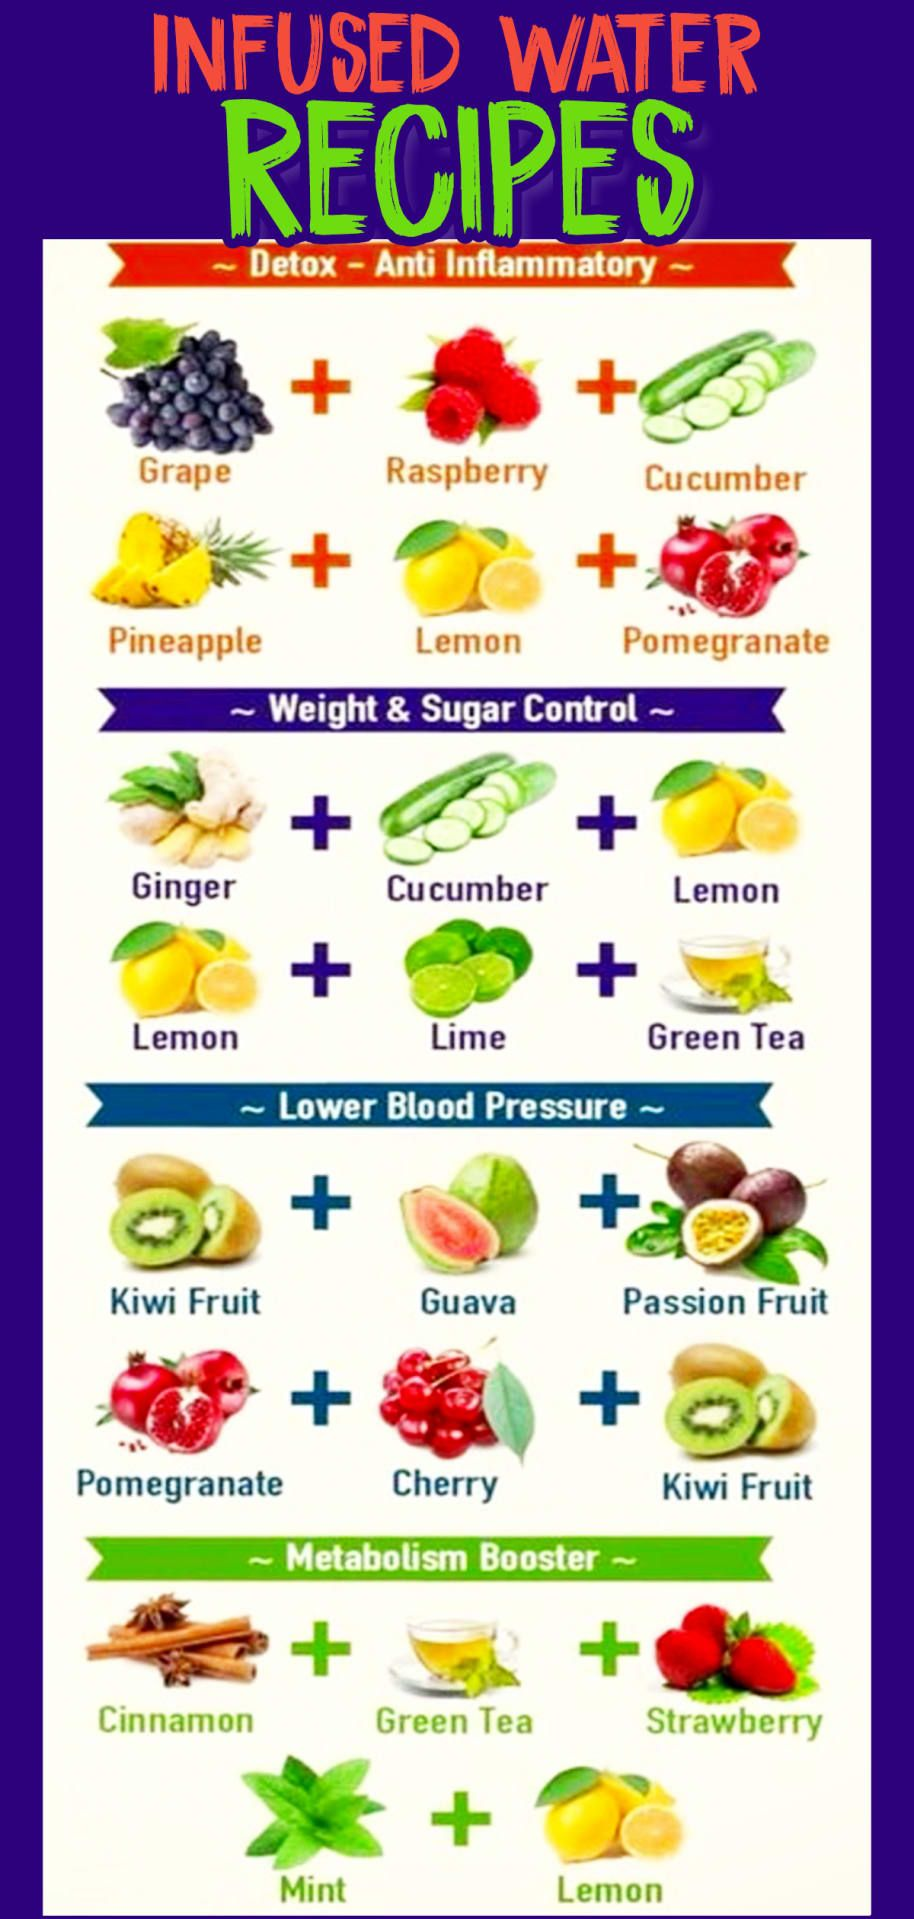 infused water recipes and benefits - how to make fruit